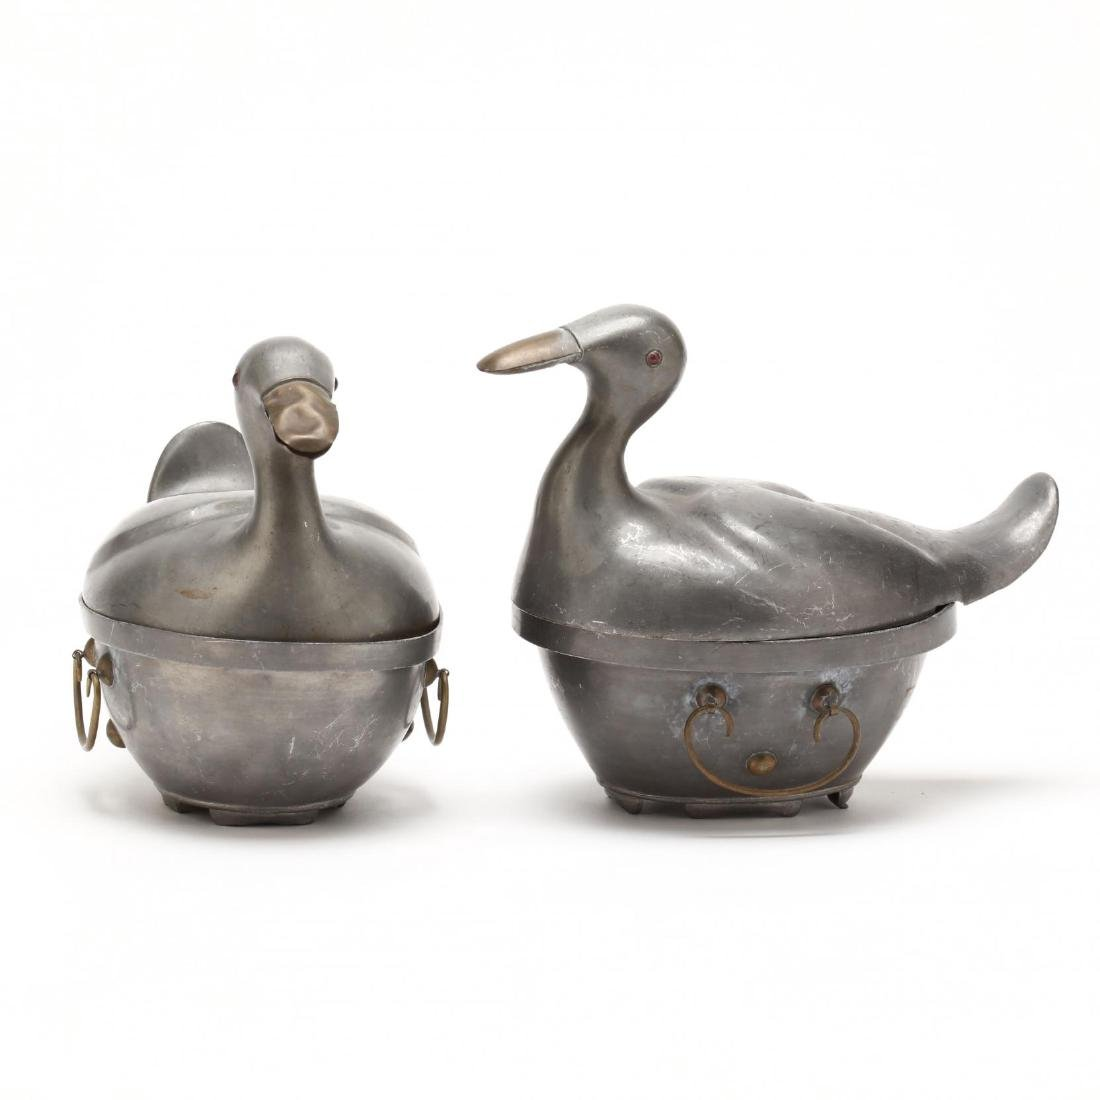 A Pair of Chinese Pewter Duck Containers